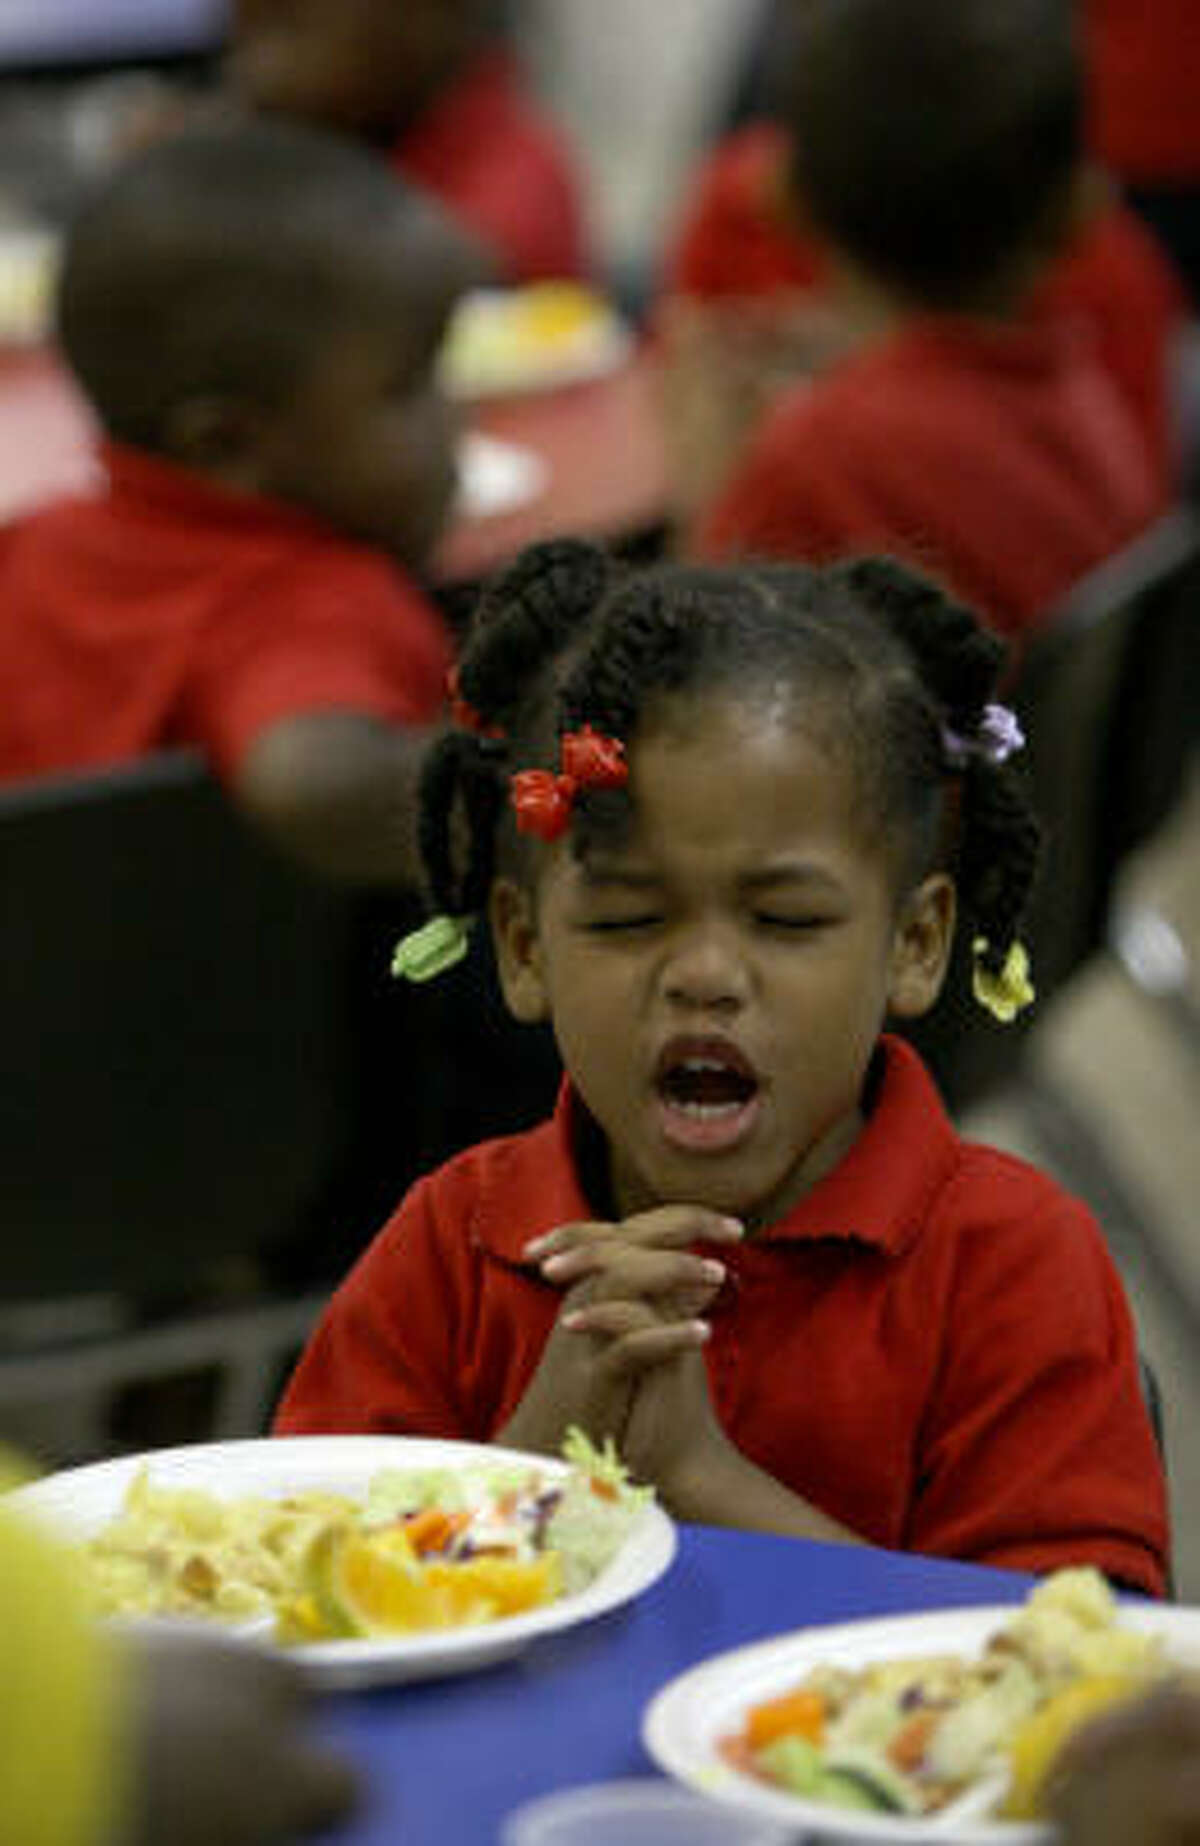 Pre-K student Jakeira Johnson, 3, prays before lunch at Yellowstone School. With limited federal funding, private, faith-based schools that cater to children from poor families are rare.